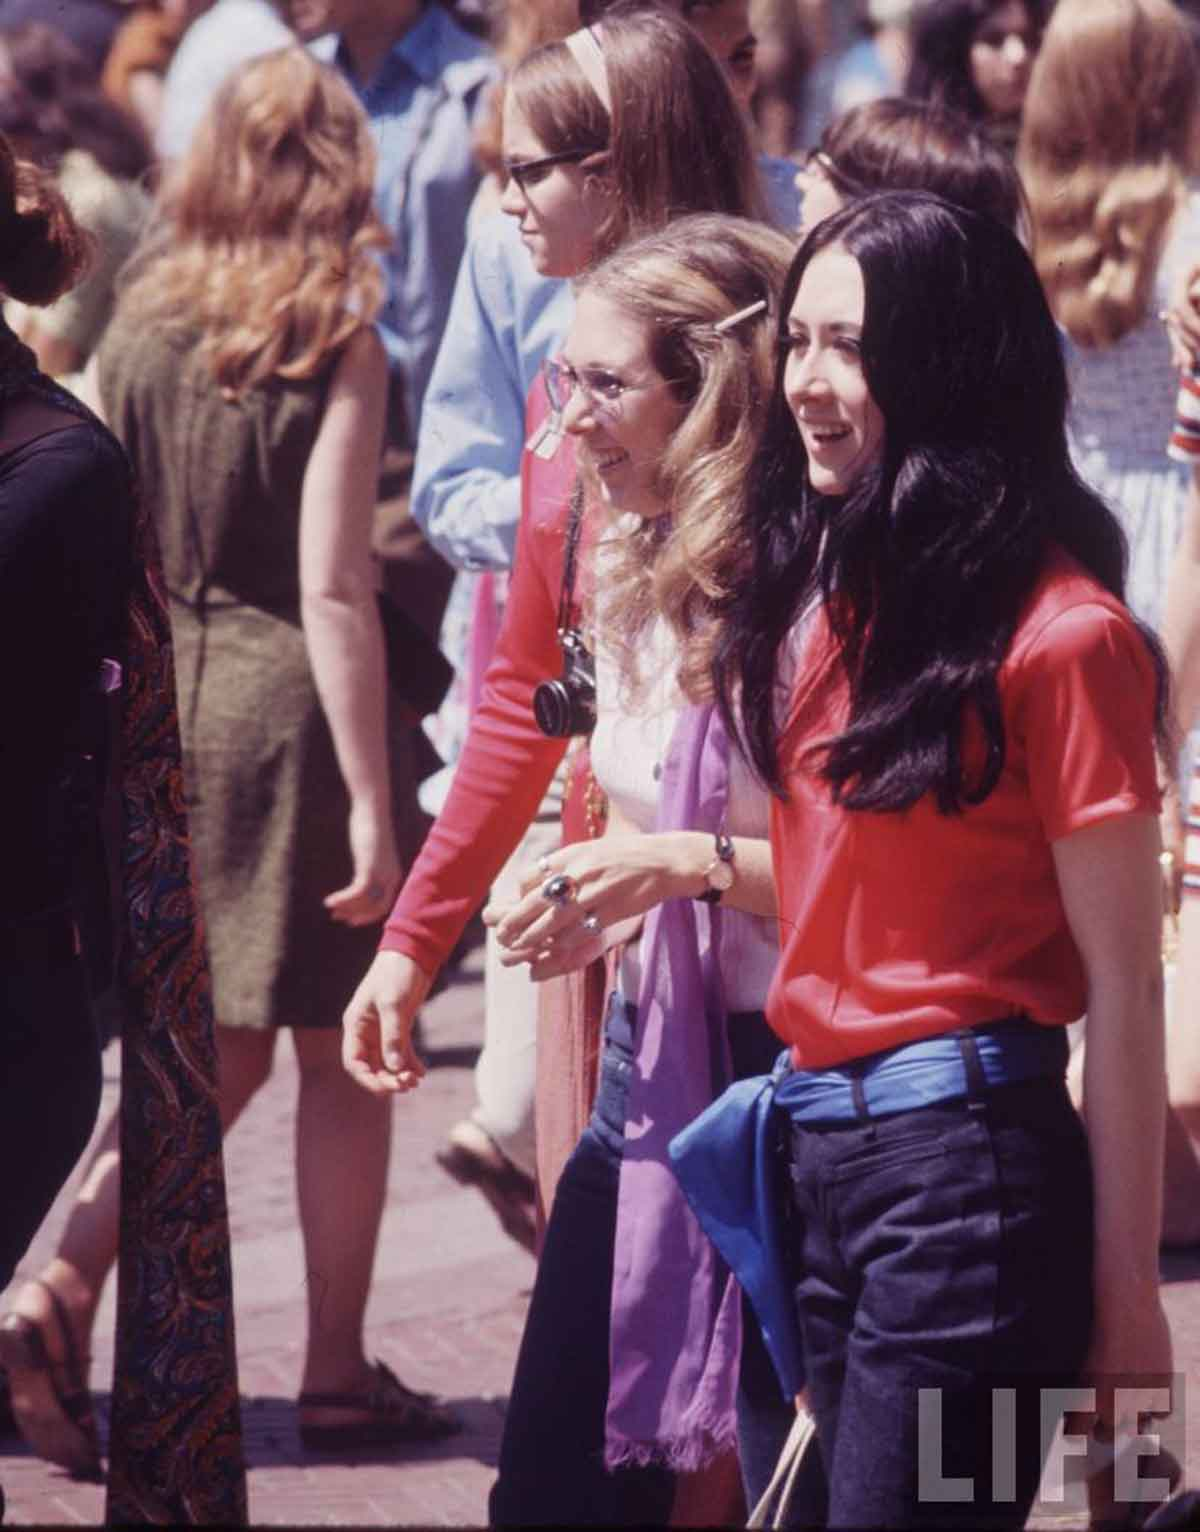 1960s-Fashion---The-New-York-Look-1969-g